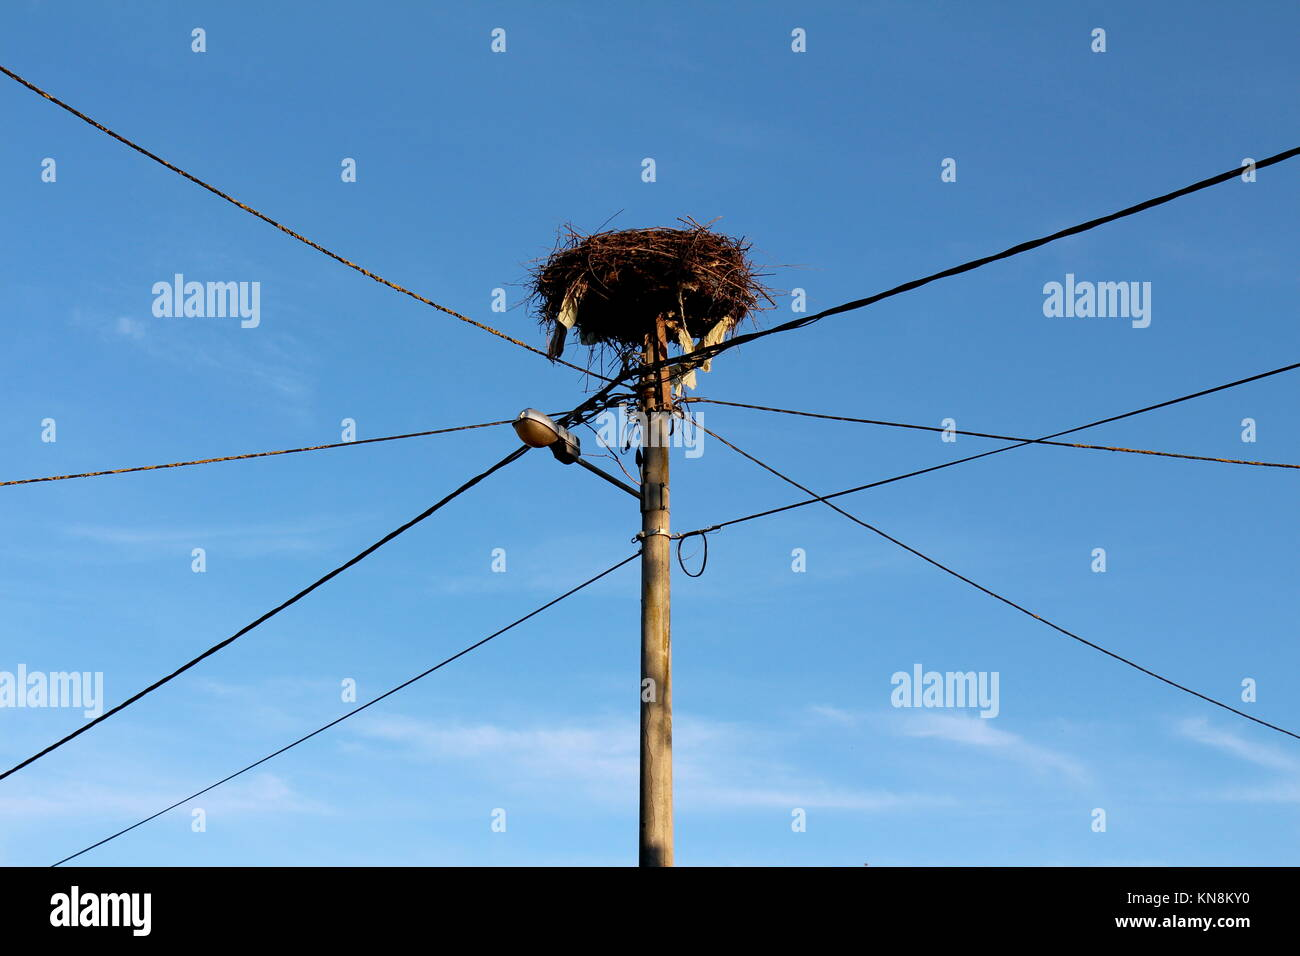 Street Wires Stock Photos & Street Wires Stock Images - Alamy